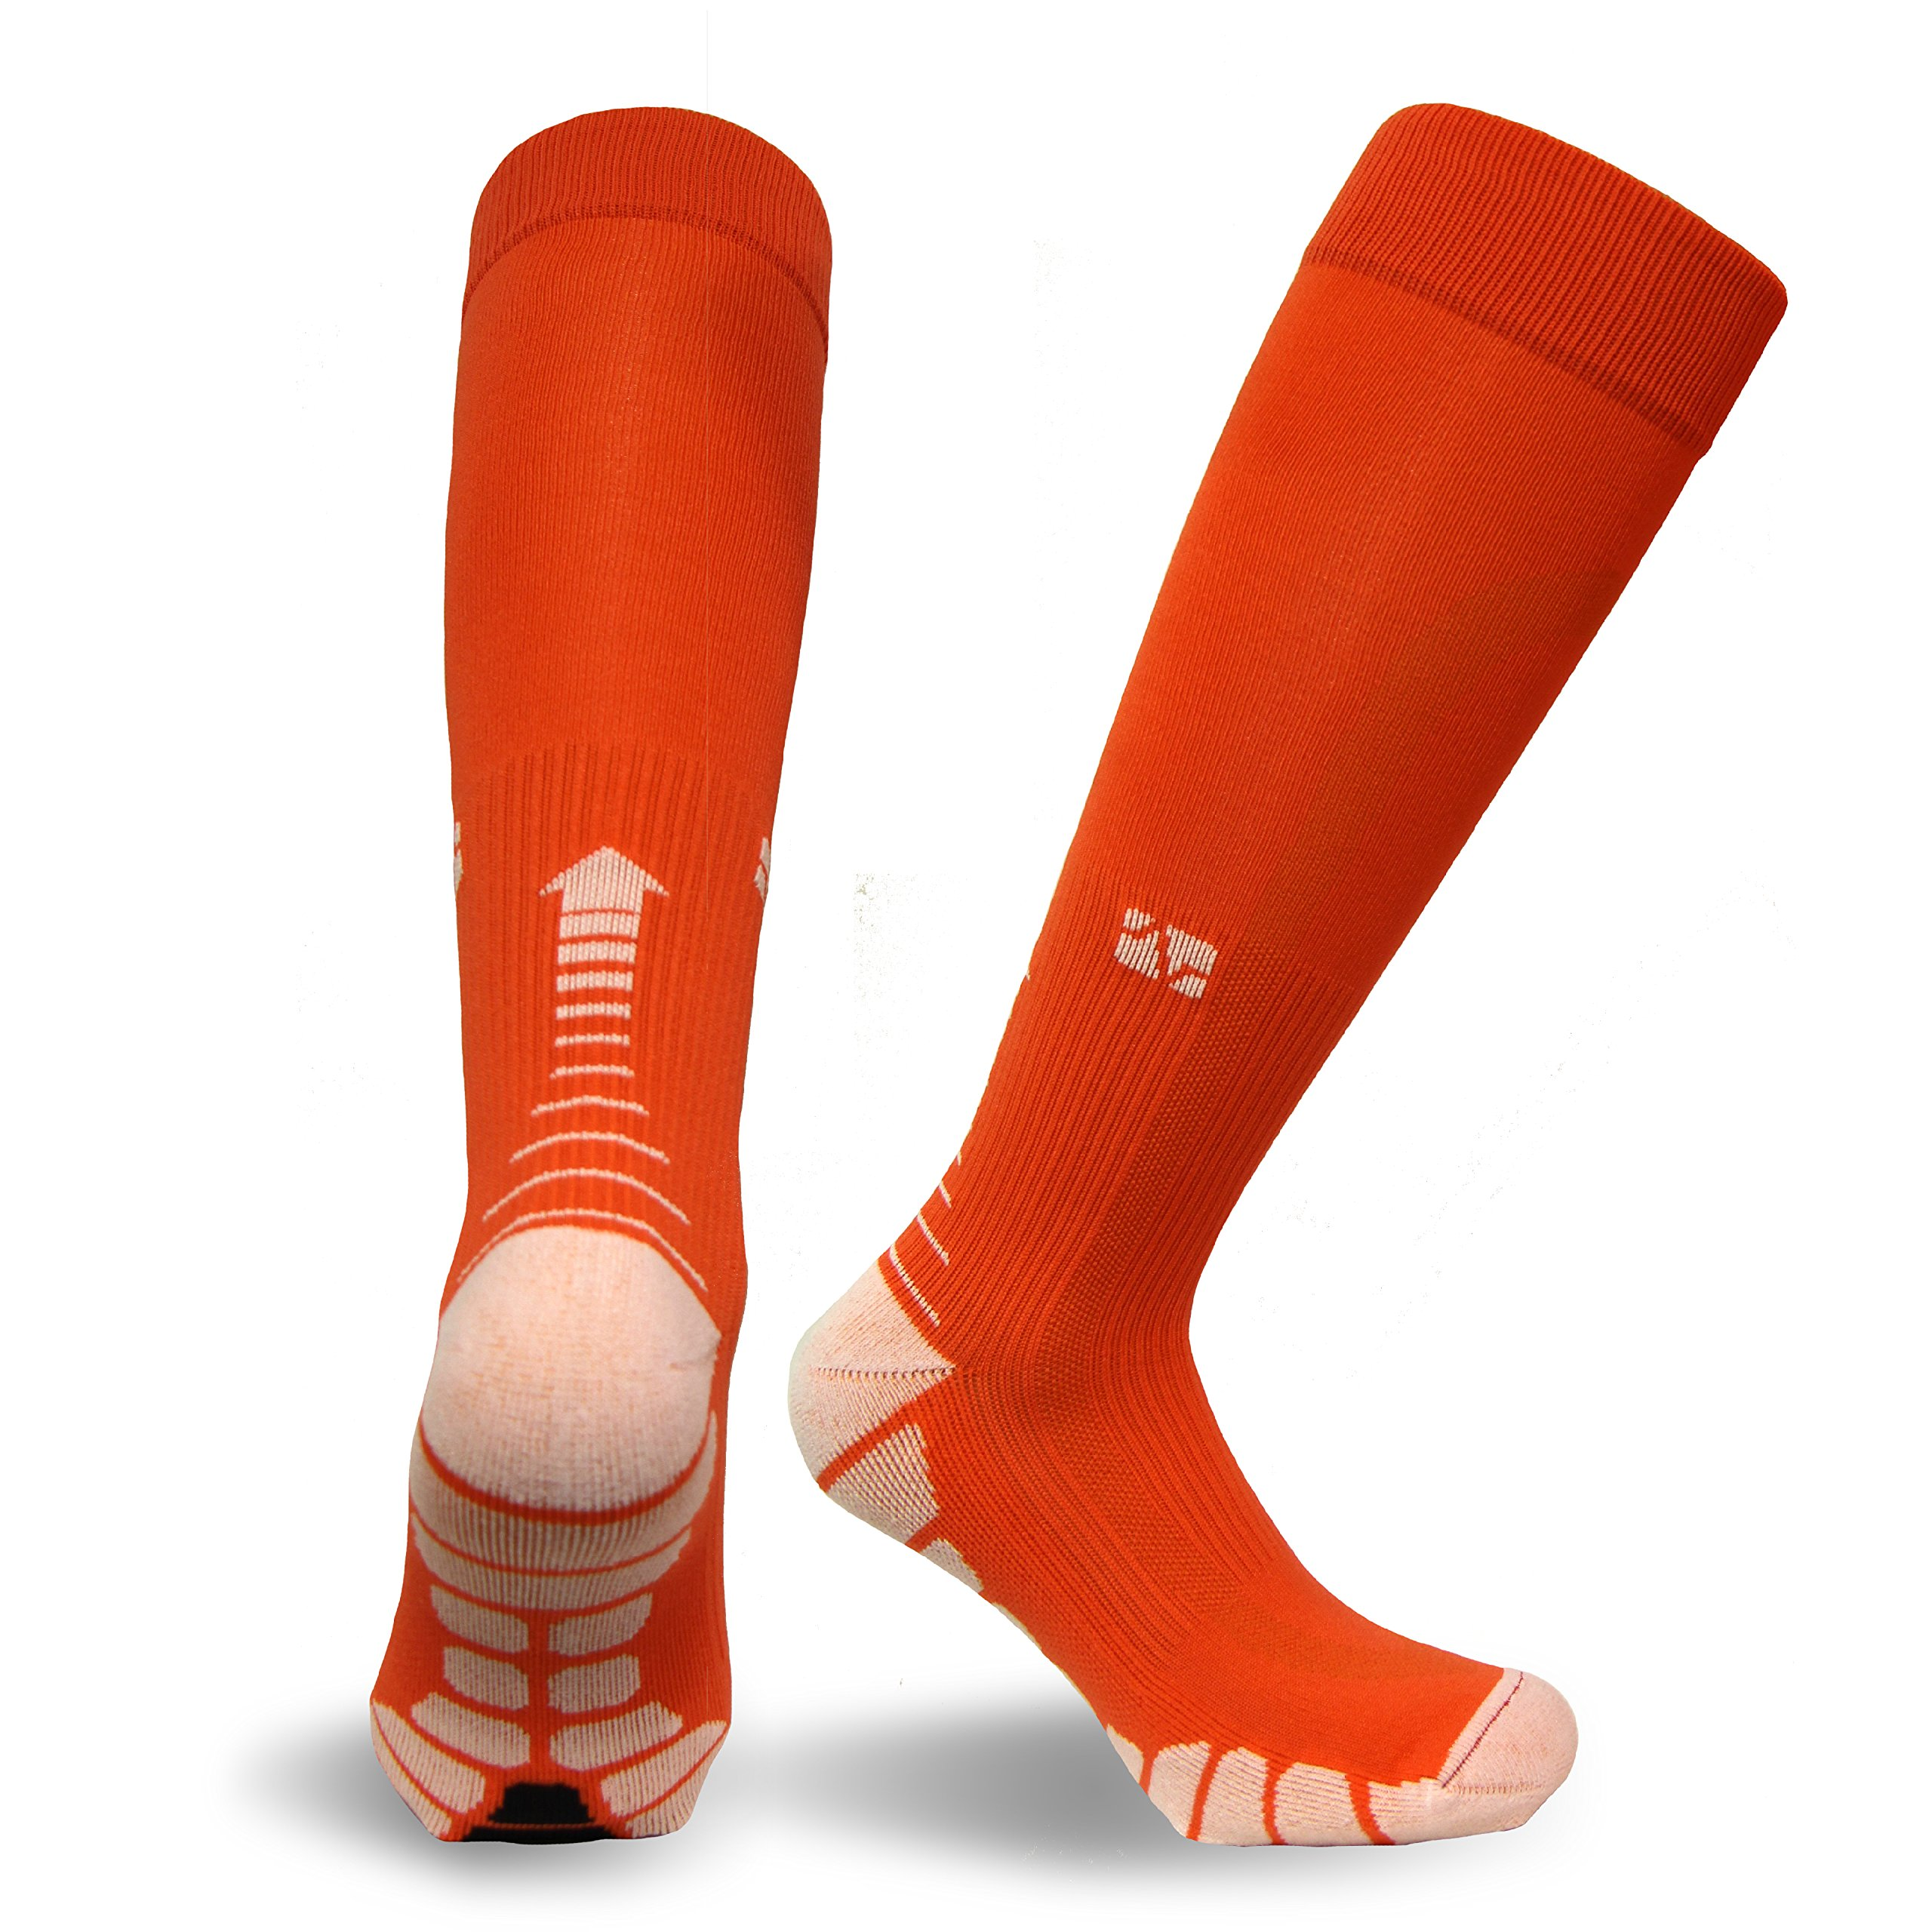 Vitalsox Italy-Patented Compression VT1211,Small,Orange by Vitalsox (Image #1)